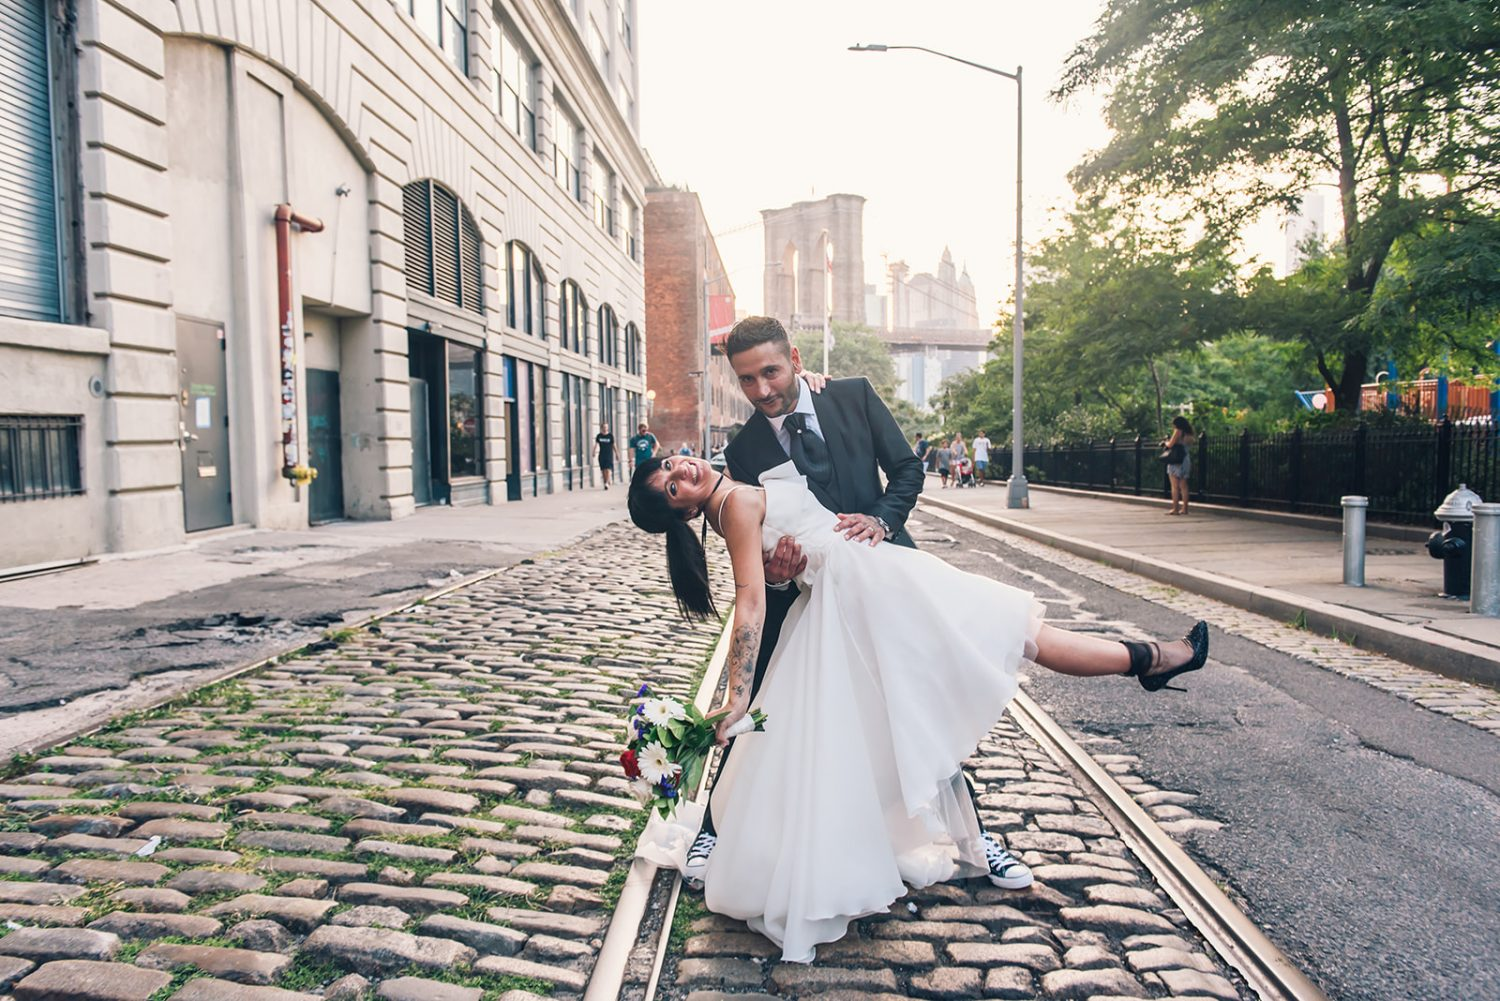 Couple posing for pre-wedding photoshoot on cobbled street in Dumbo